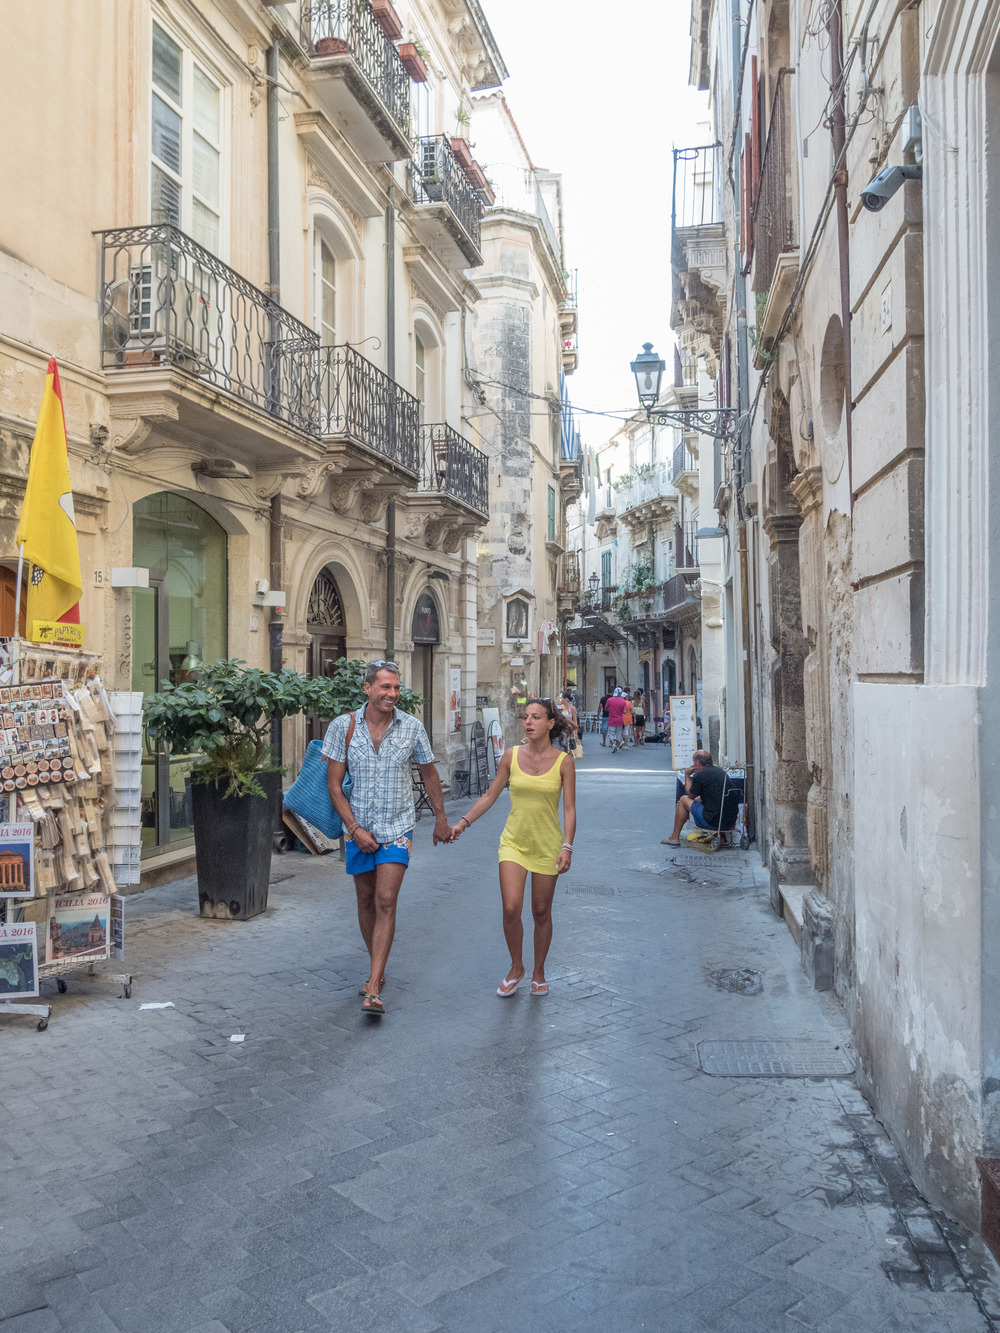 It is difficult to beat Siracusa as for places to visit in Sicily to enjoy. Ortigia will not disappoint so lng as you enjoy it for what it really is.